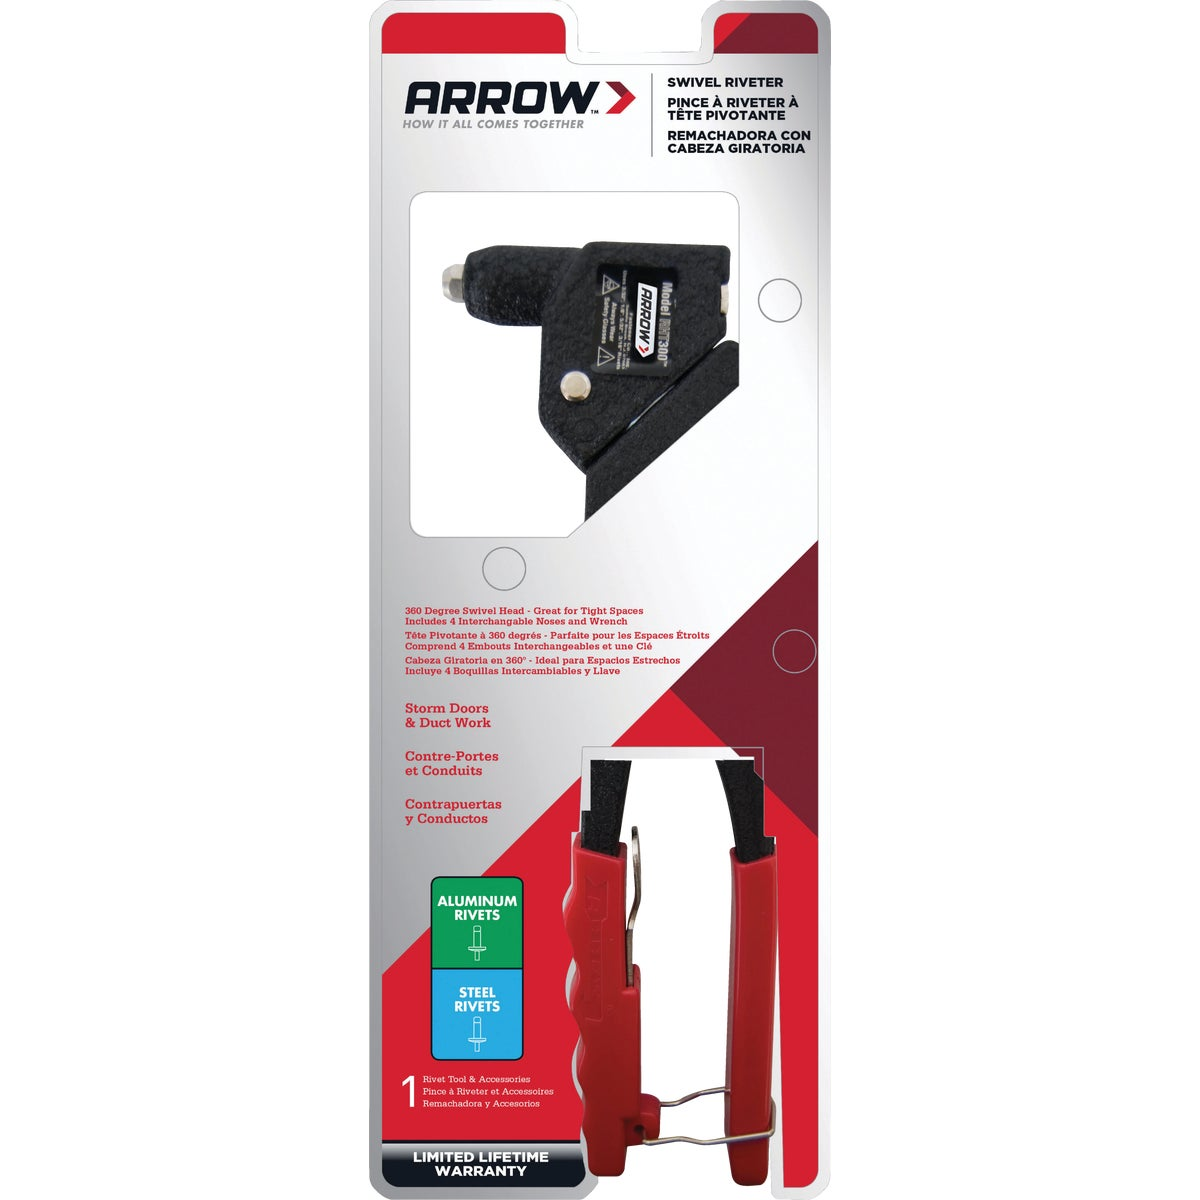 TWISTER RIVET TOOL - RHT300 by Arrow Fastener Co